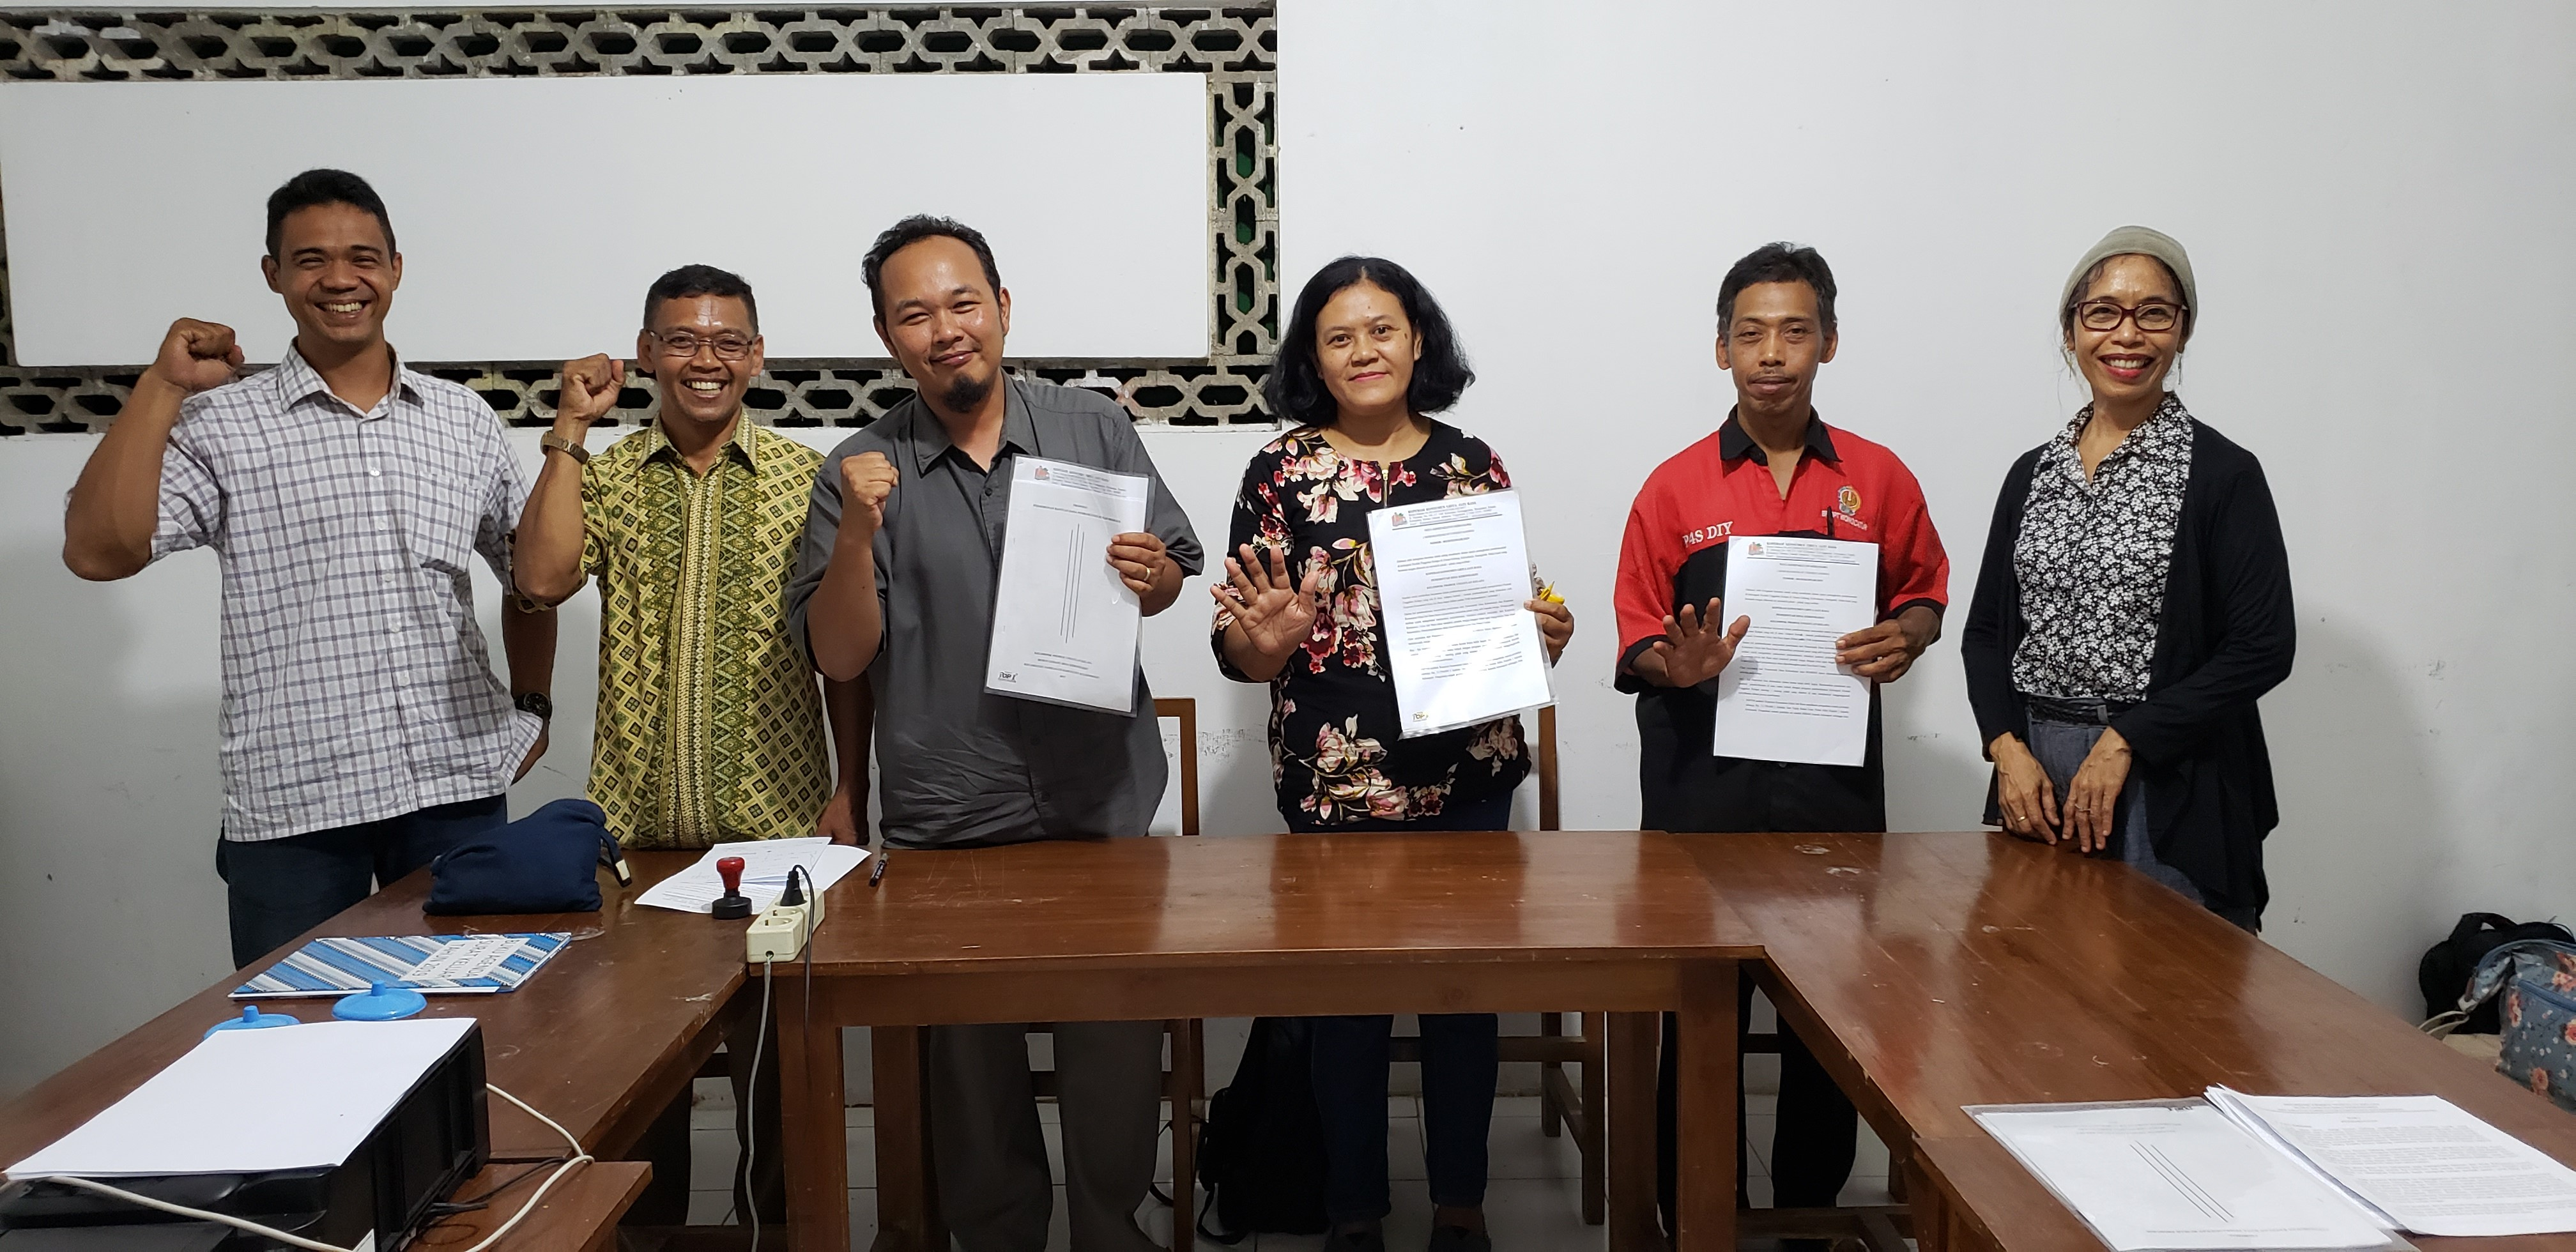 A Grant from PW was given to buy a new house of production for the members of Griya Jati Rasa's Co-OP.